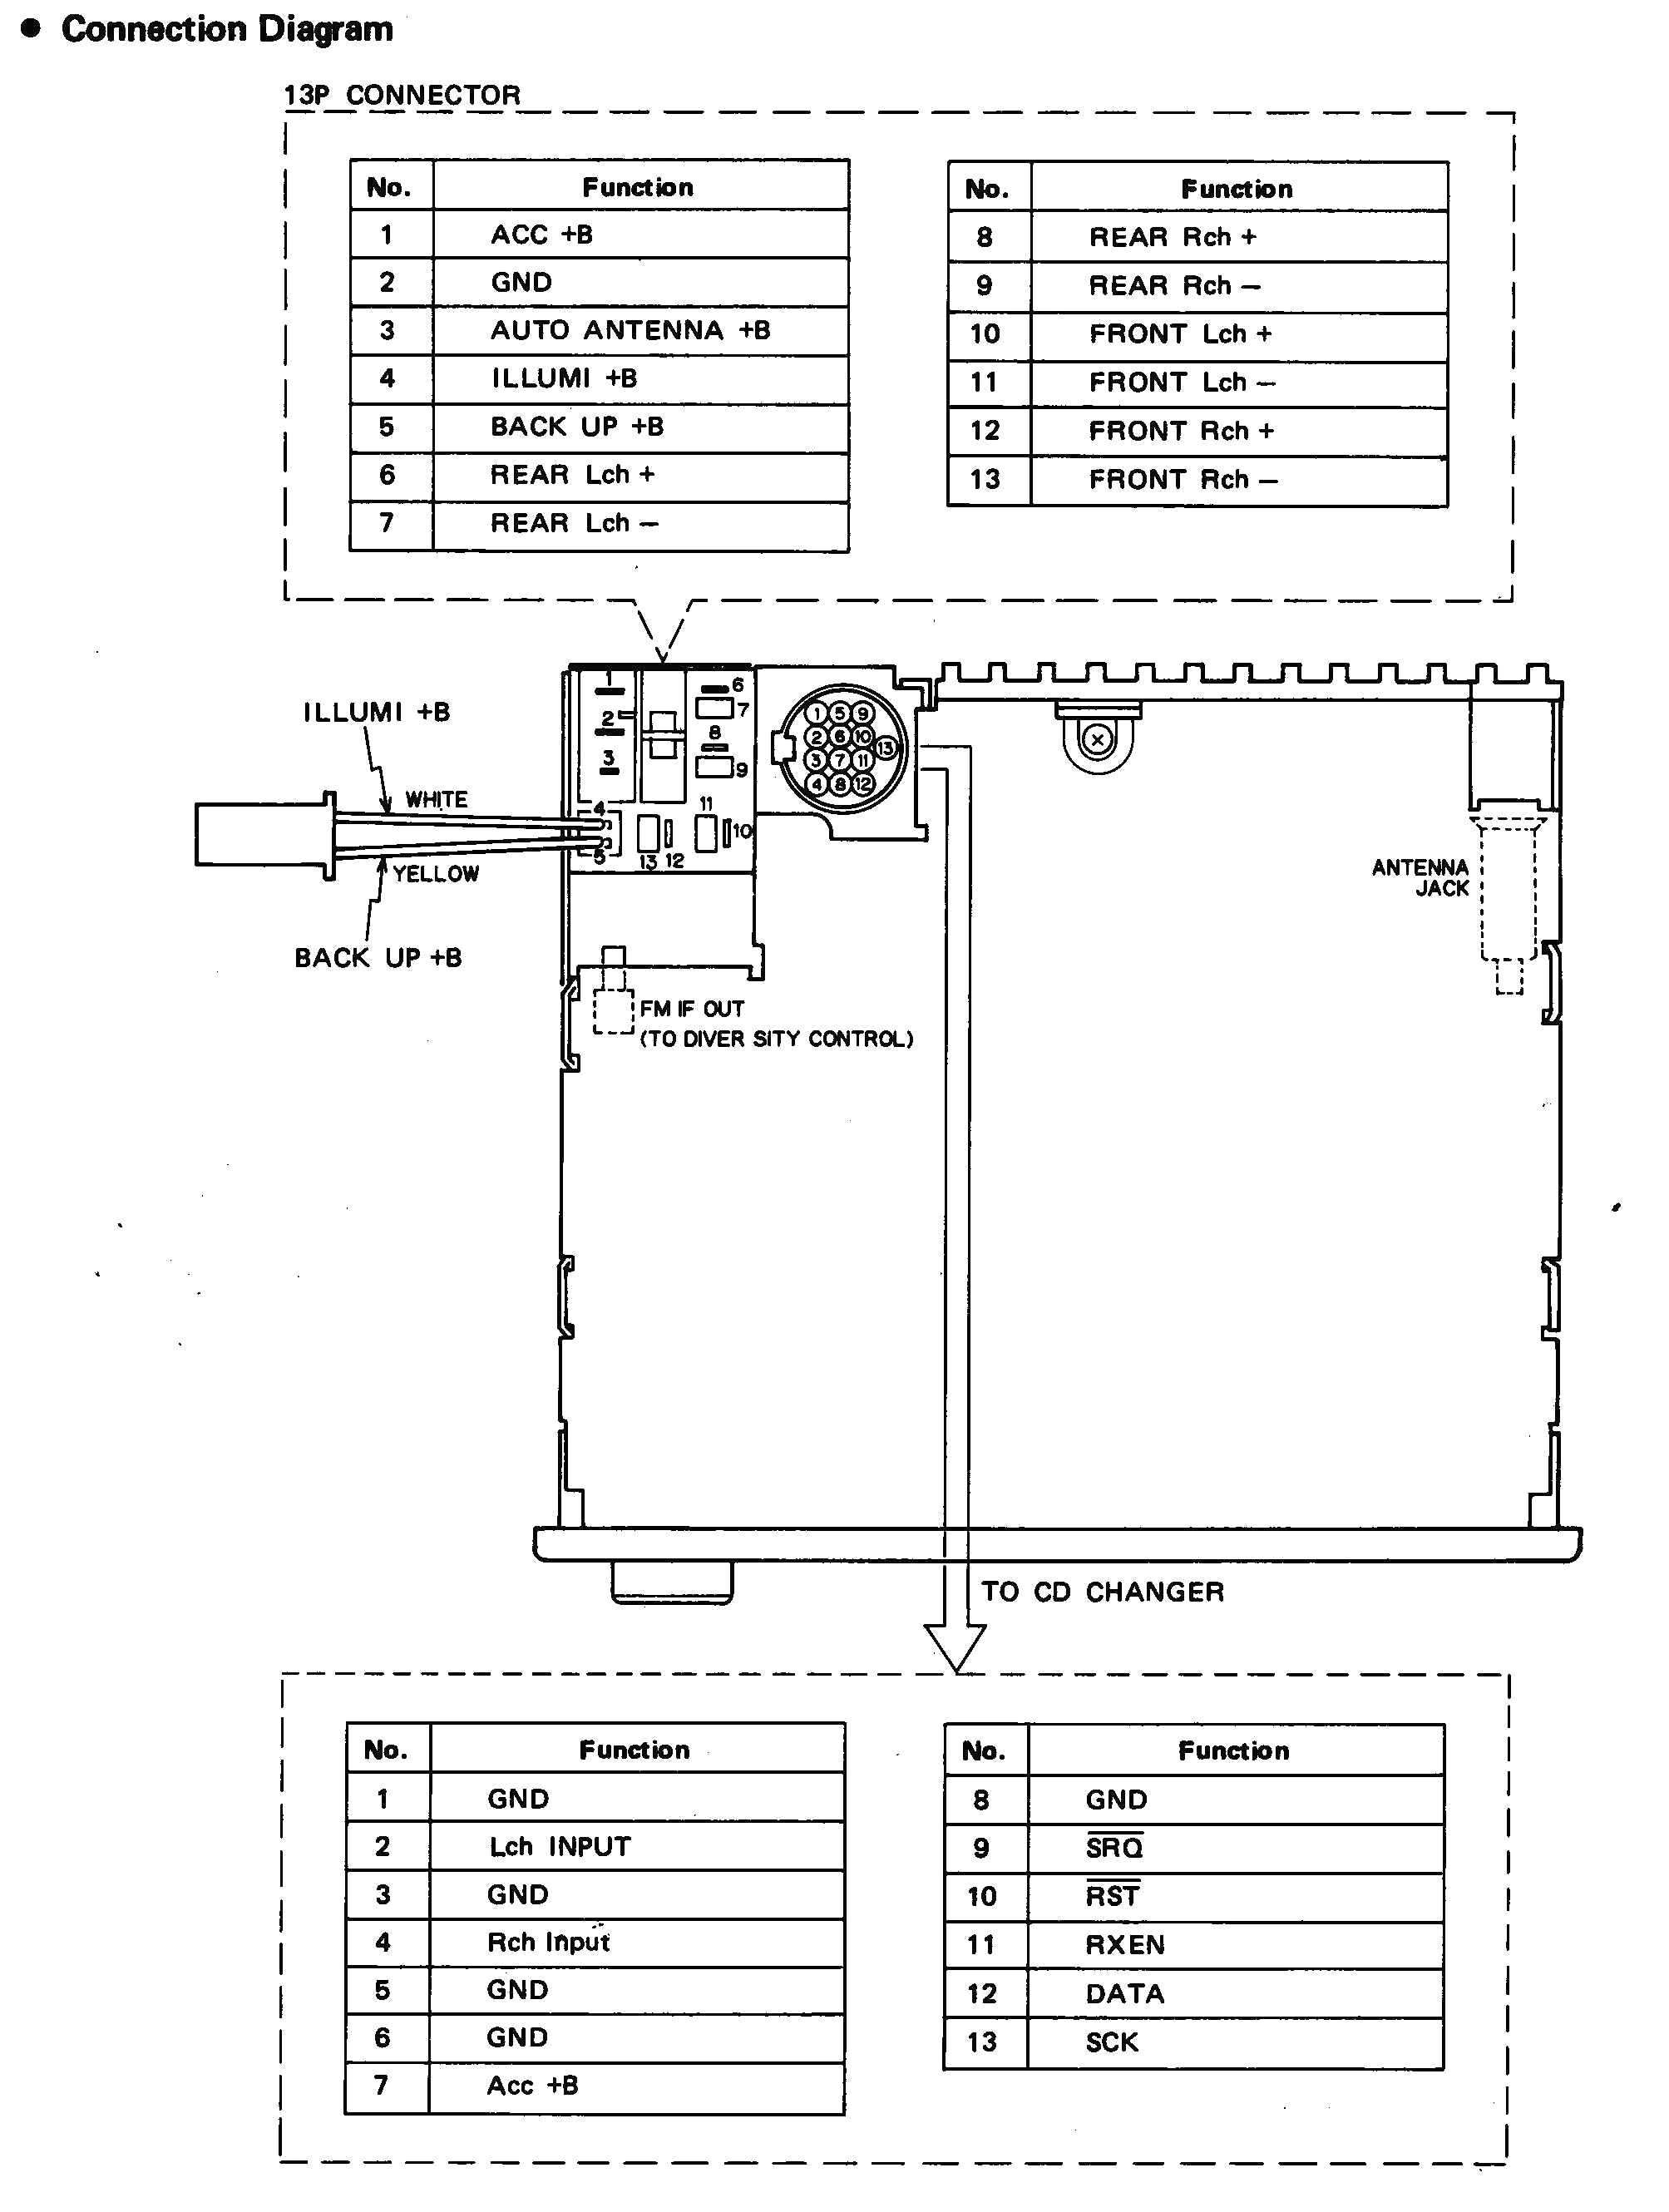 Wiring Diagram for sony Car Stereo Factory Car Stereo Wiring Diagrams Wiring Diagram Of Wiring Diagram for sony Car Stereo